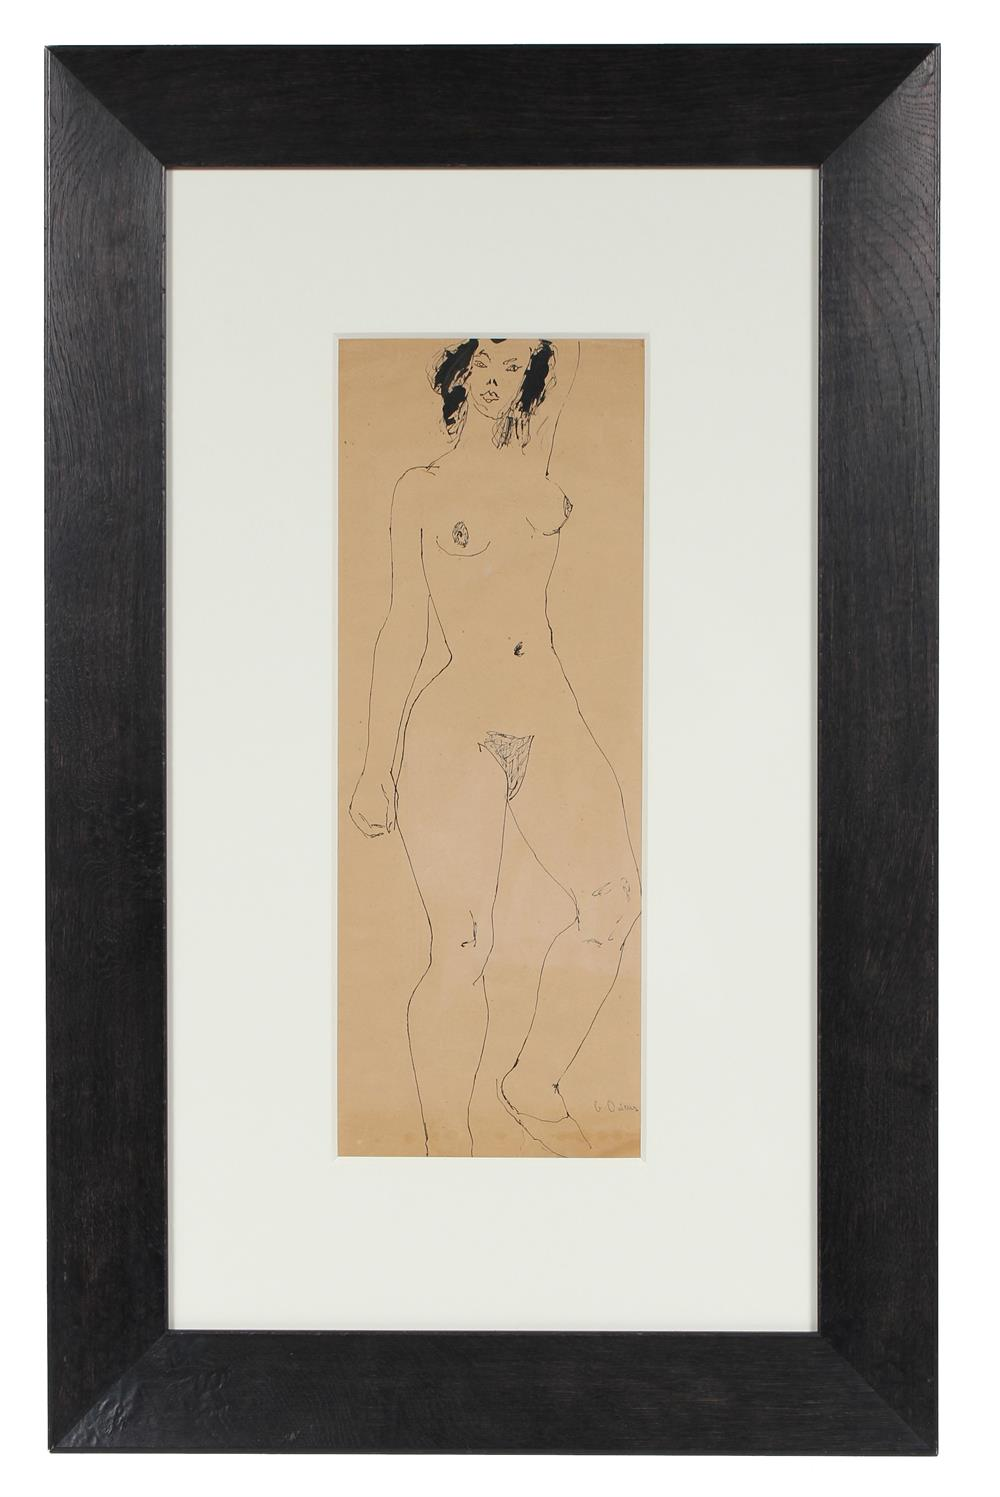 georgette london owens 1940s female nude drawing